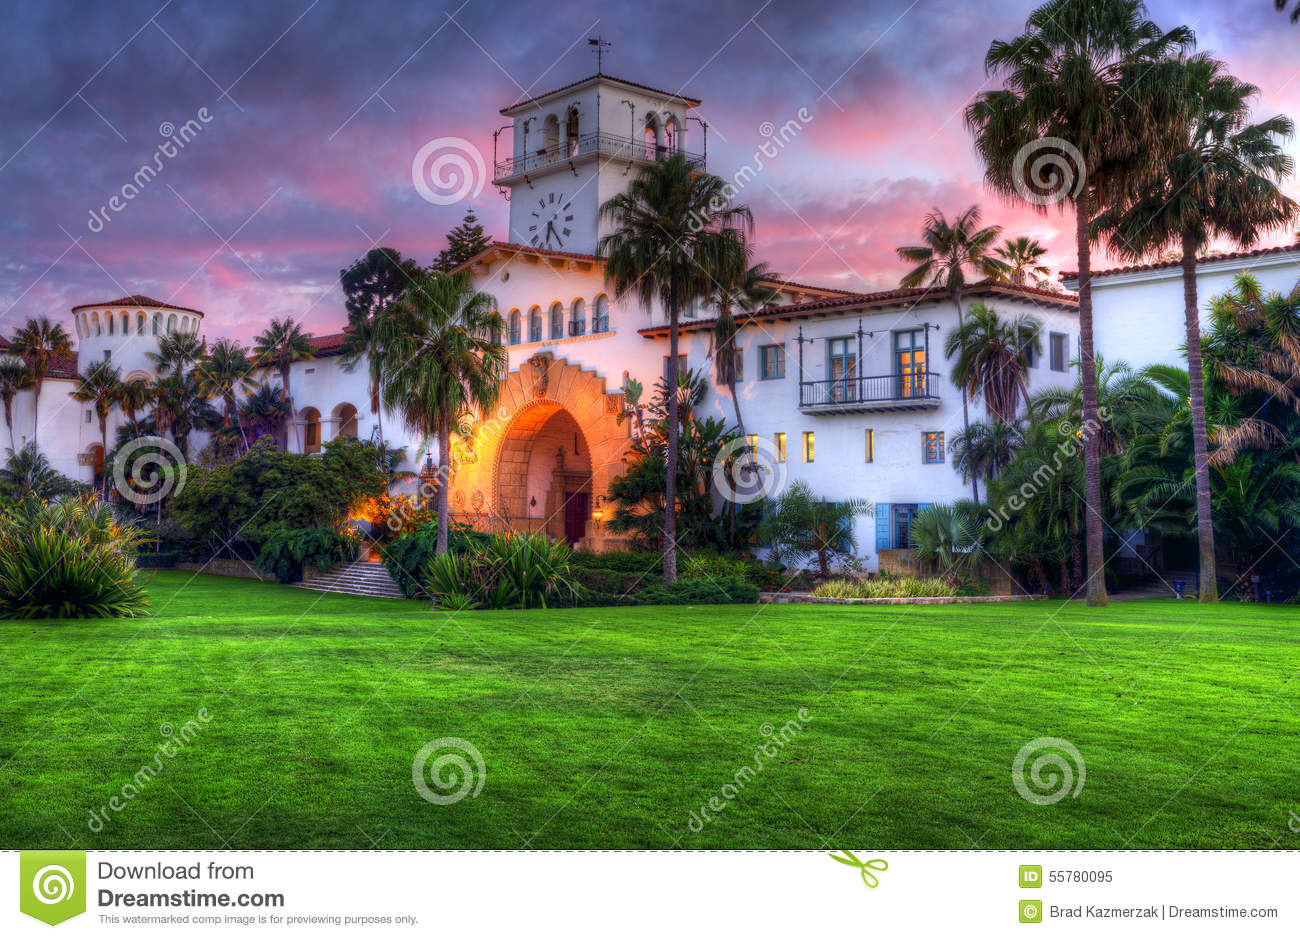 Santa Barbara Courthouse.